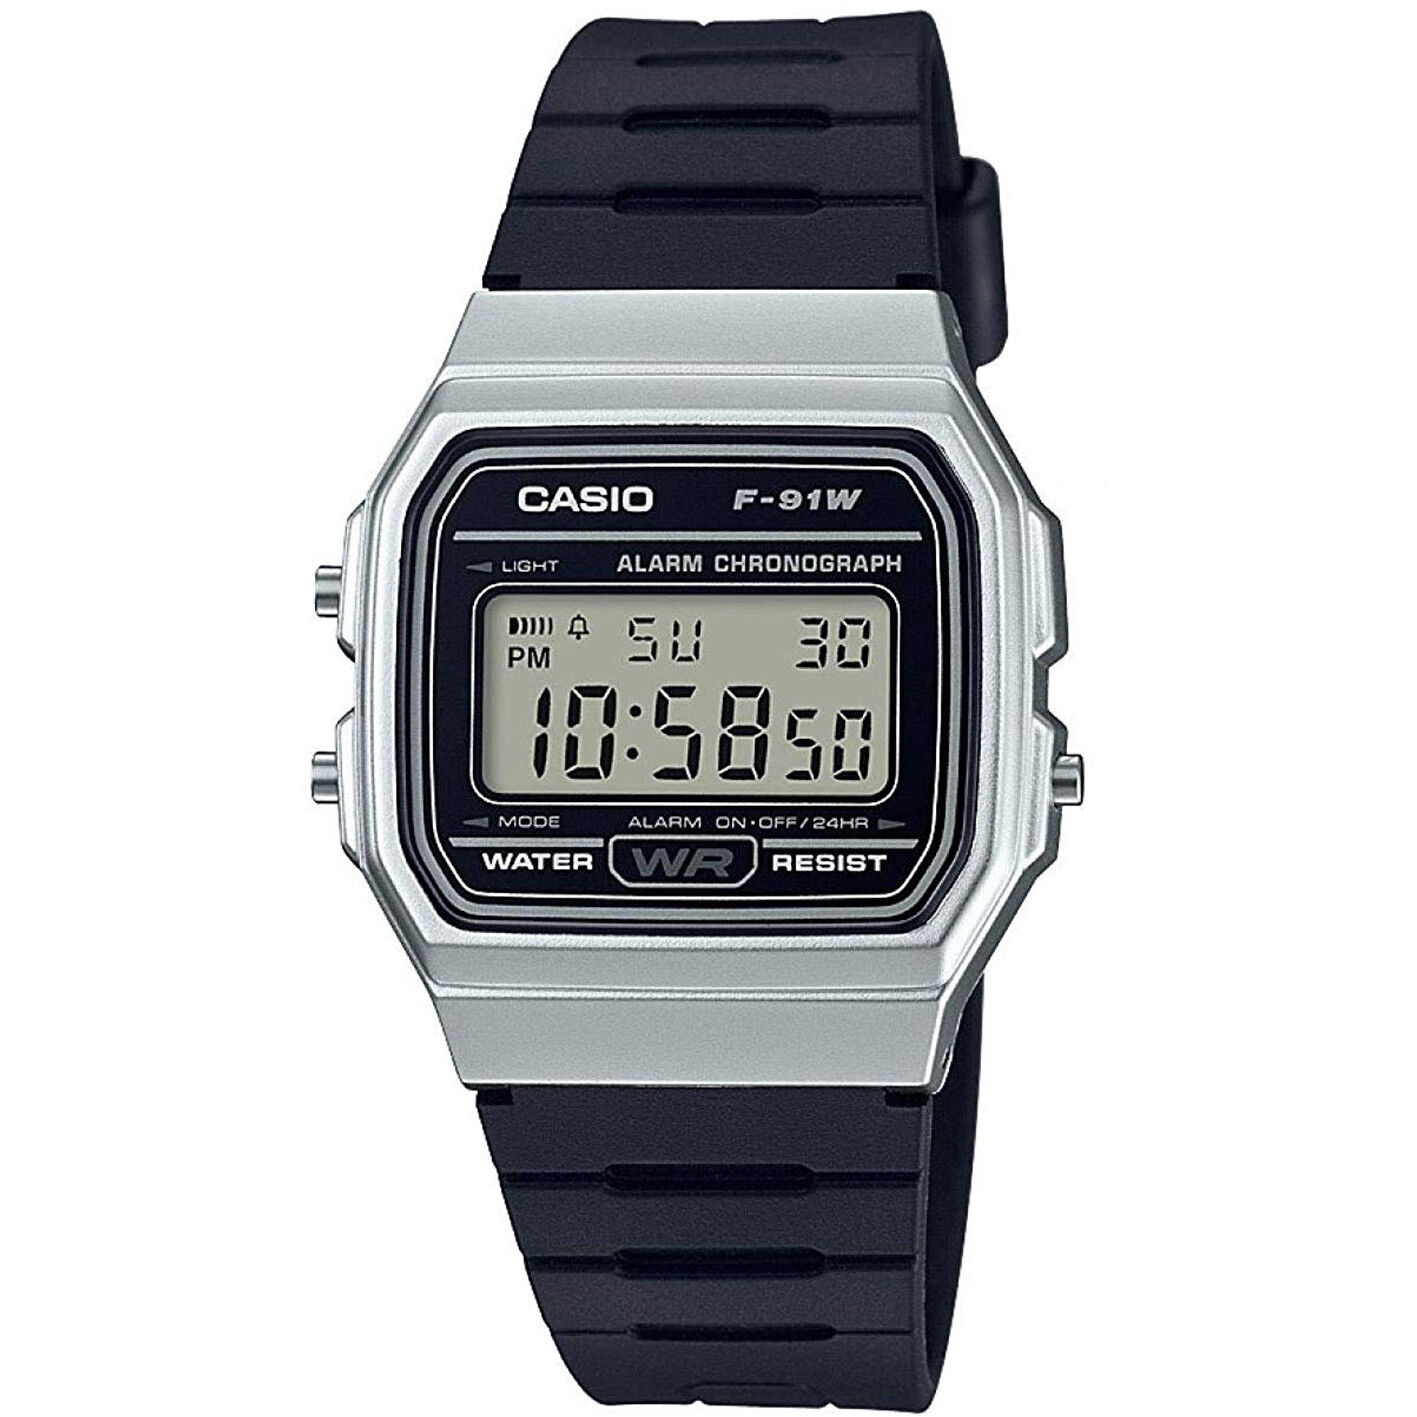 Casio Classic LCD Digital Watch Black and Silver F-91WM-7AEF LCD